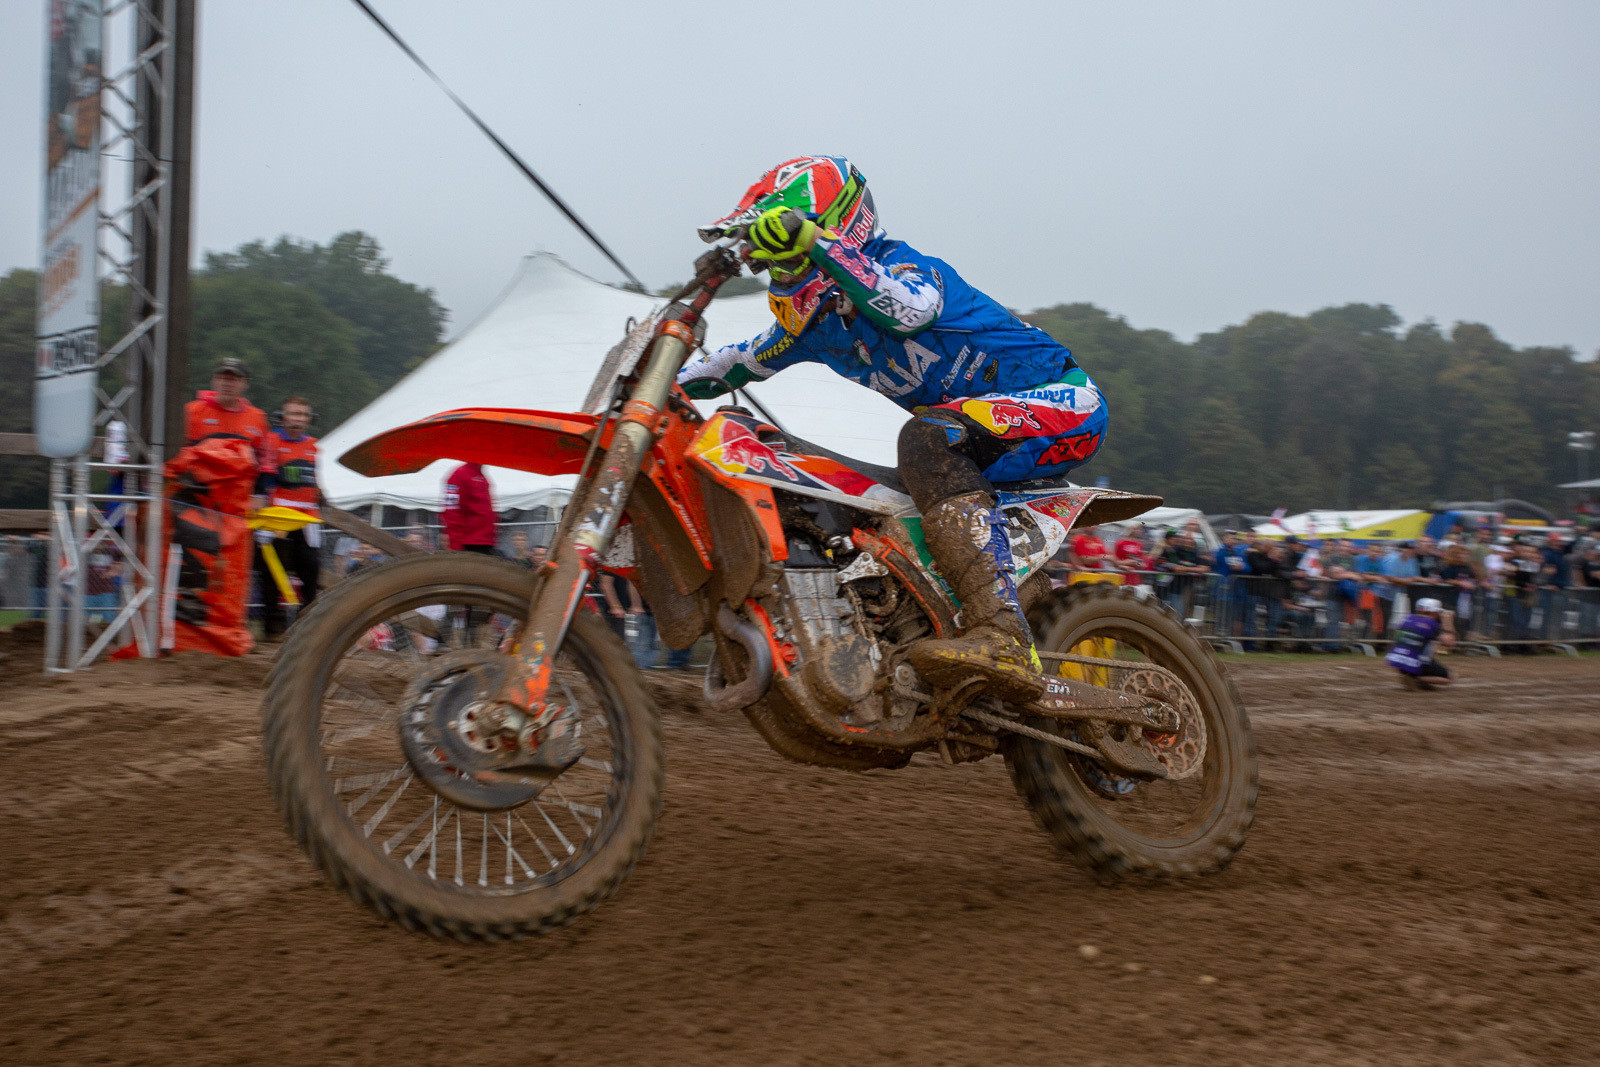 Antonio Cairoli took the win in this one, giving the Italian team an early headstart, as they went on to finish second for the day.